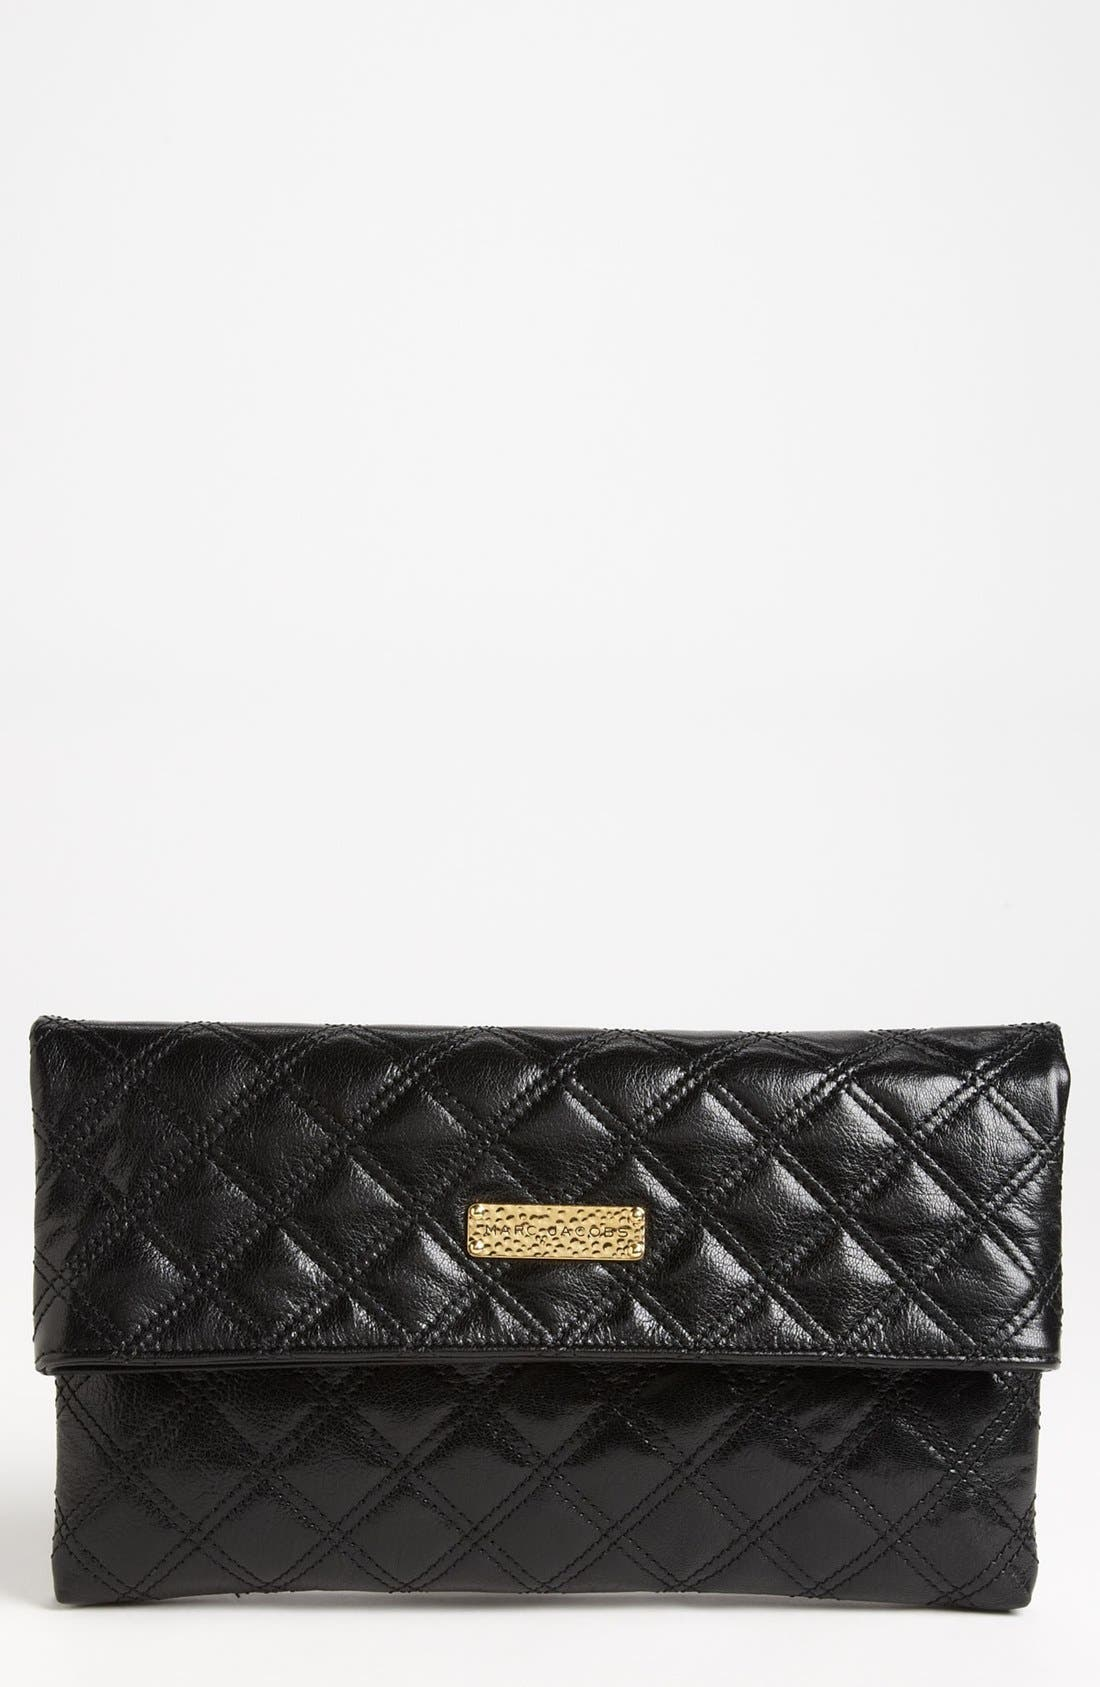 Alternate Image 1 Selected - MARC JACOBS 'Large Baroque Eugenie' Leather Clutch